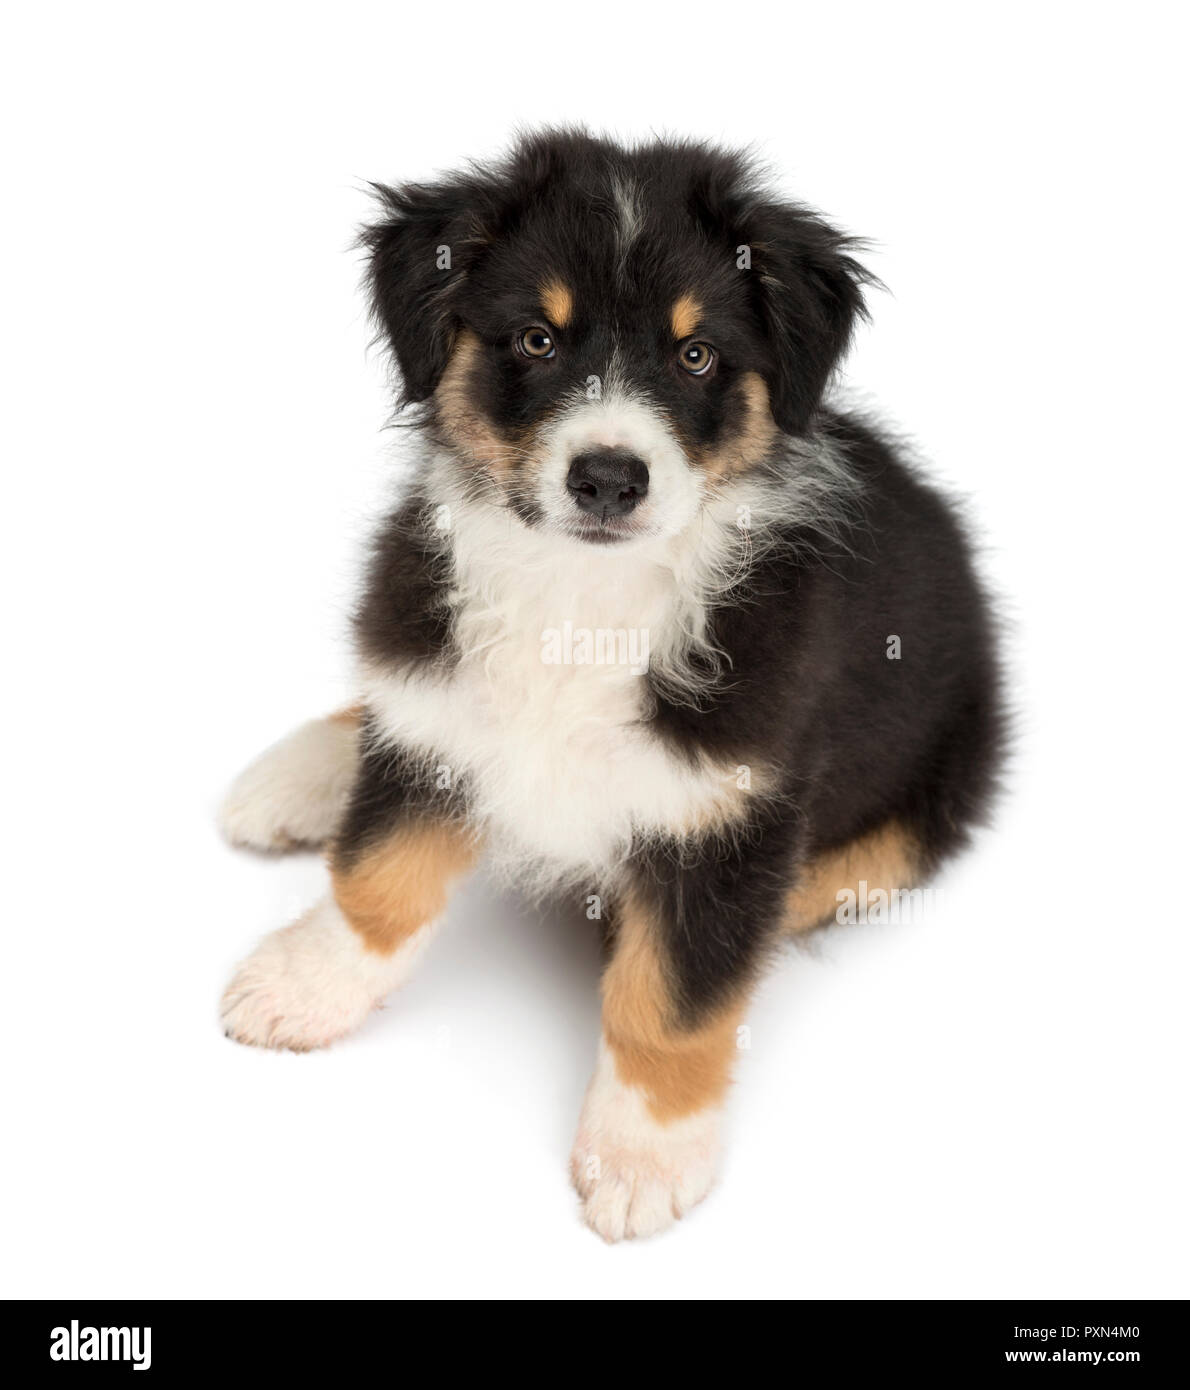 High View Of An Australian Shepherd Puppy 2 Months Old Sitting And Looking At Camera Against White Background Stock Photo Alamy